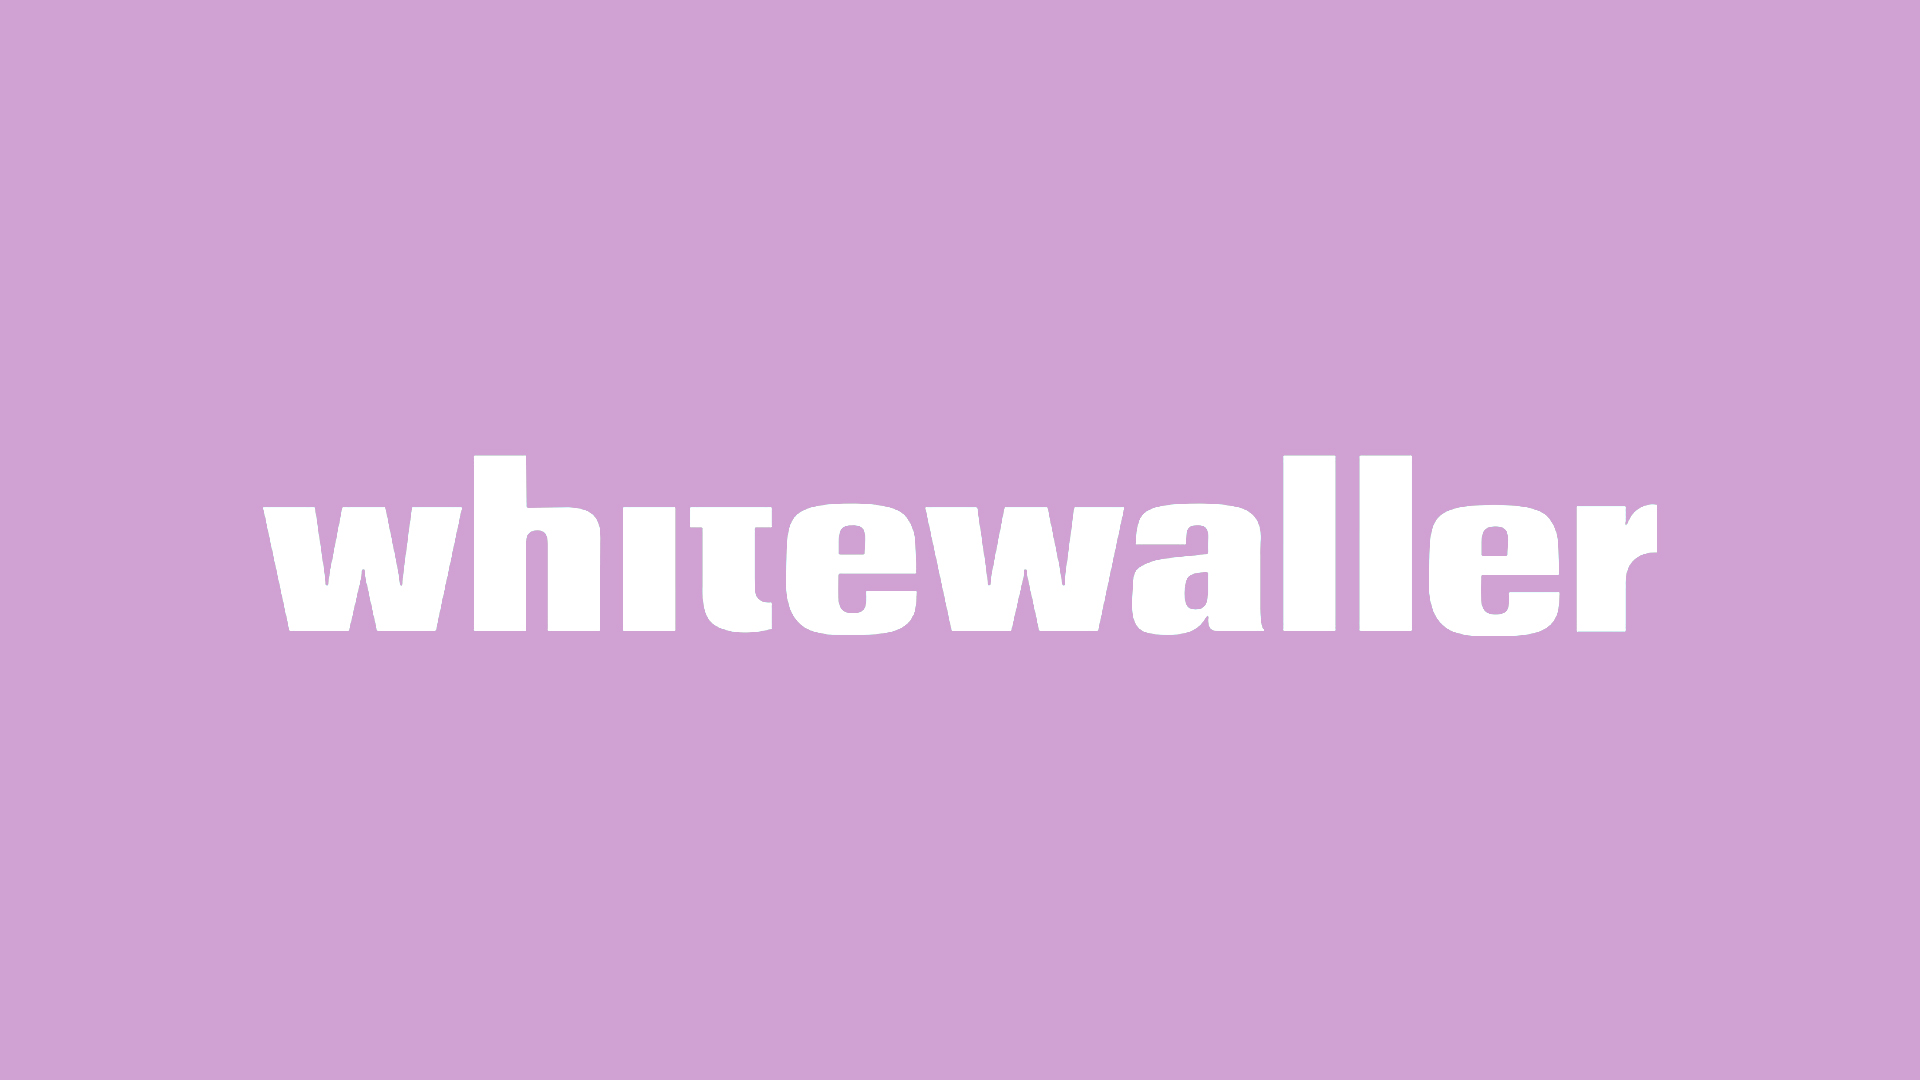 25 - Whitewaller_may2019.jpg